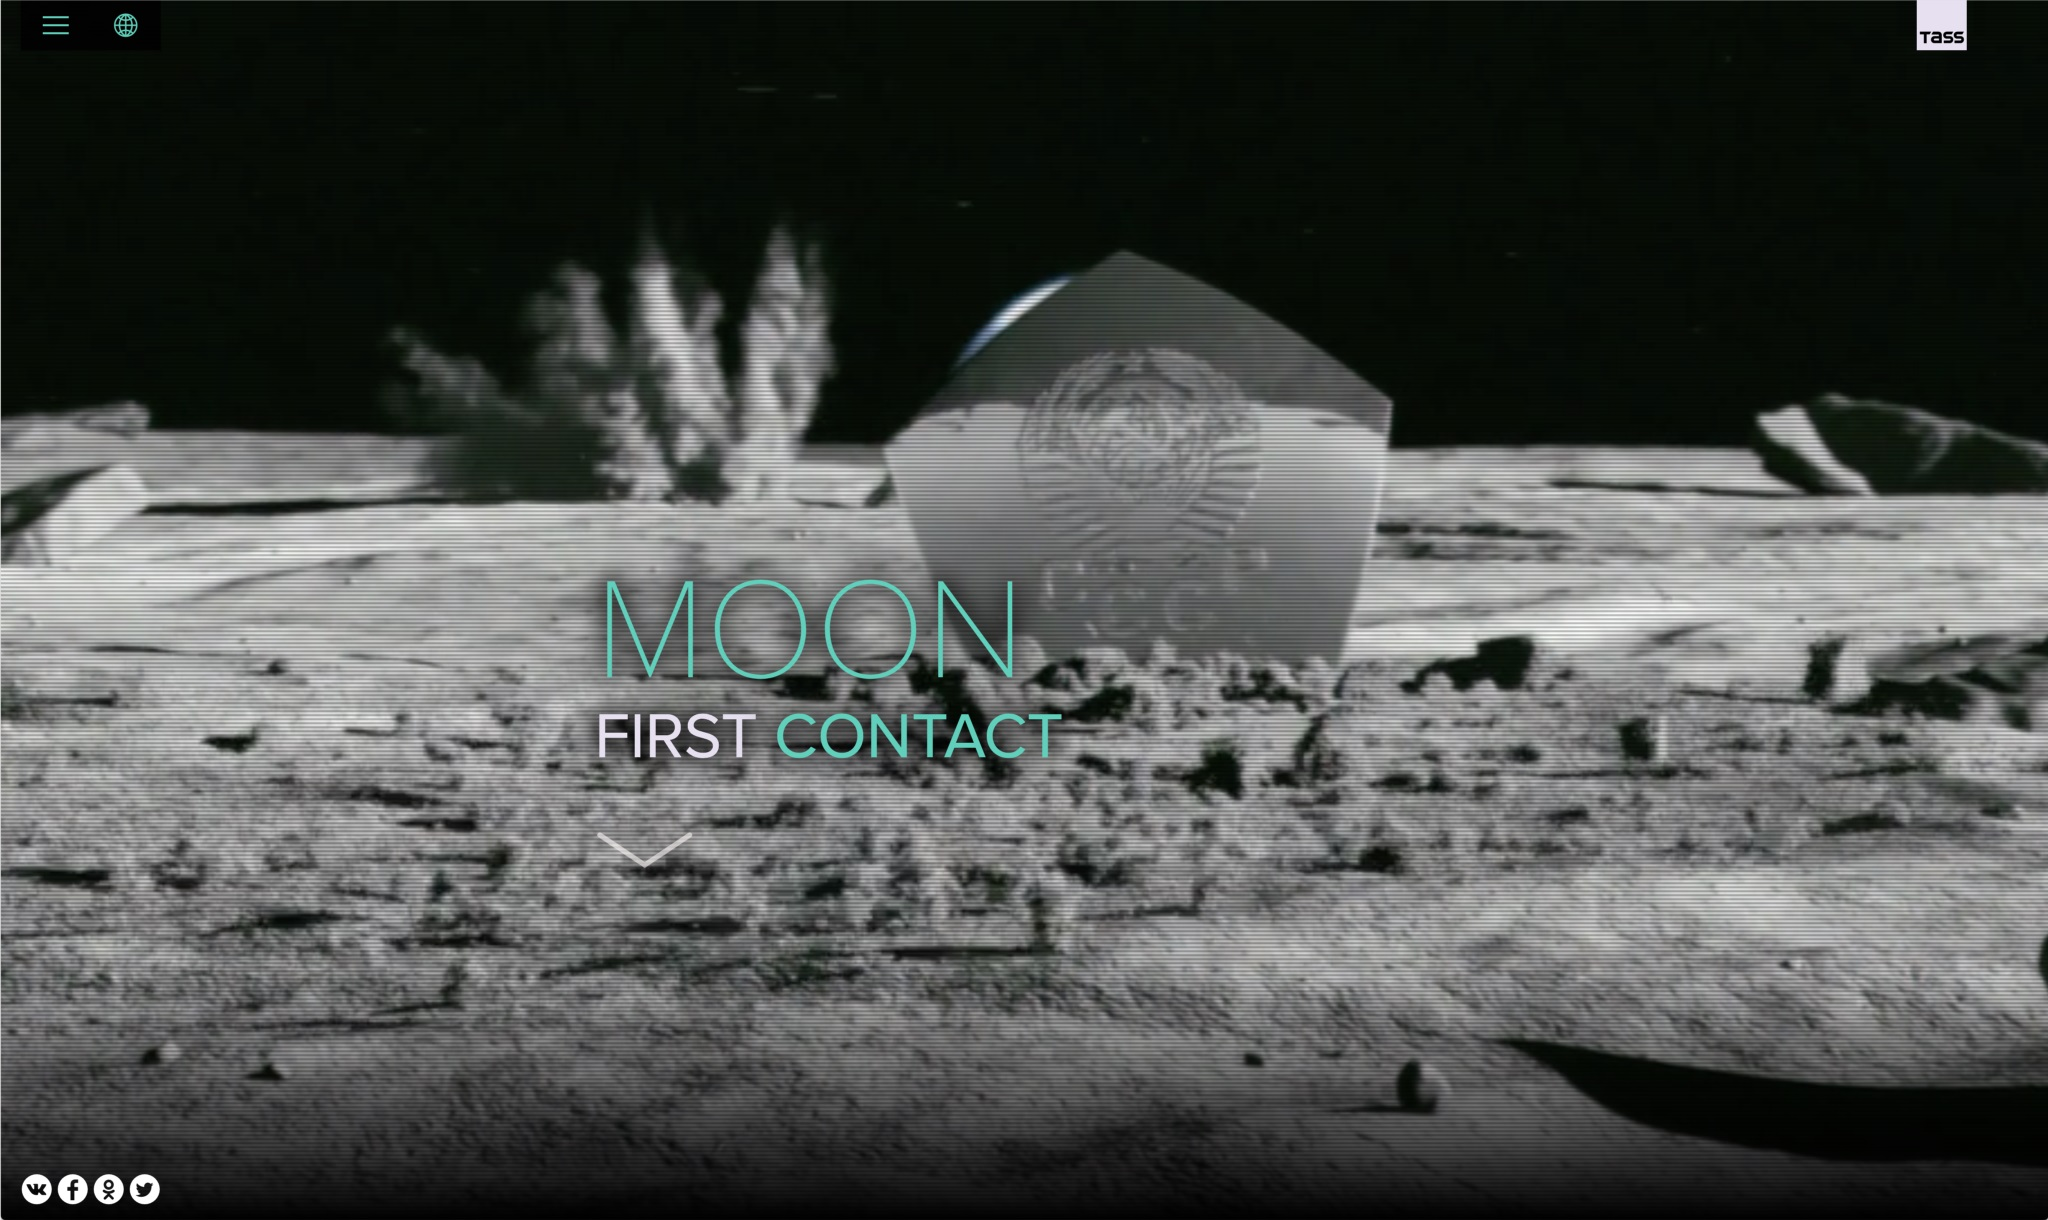 Moon. First contact.